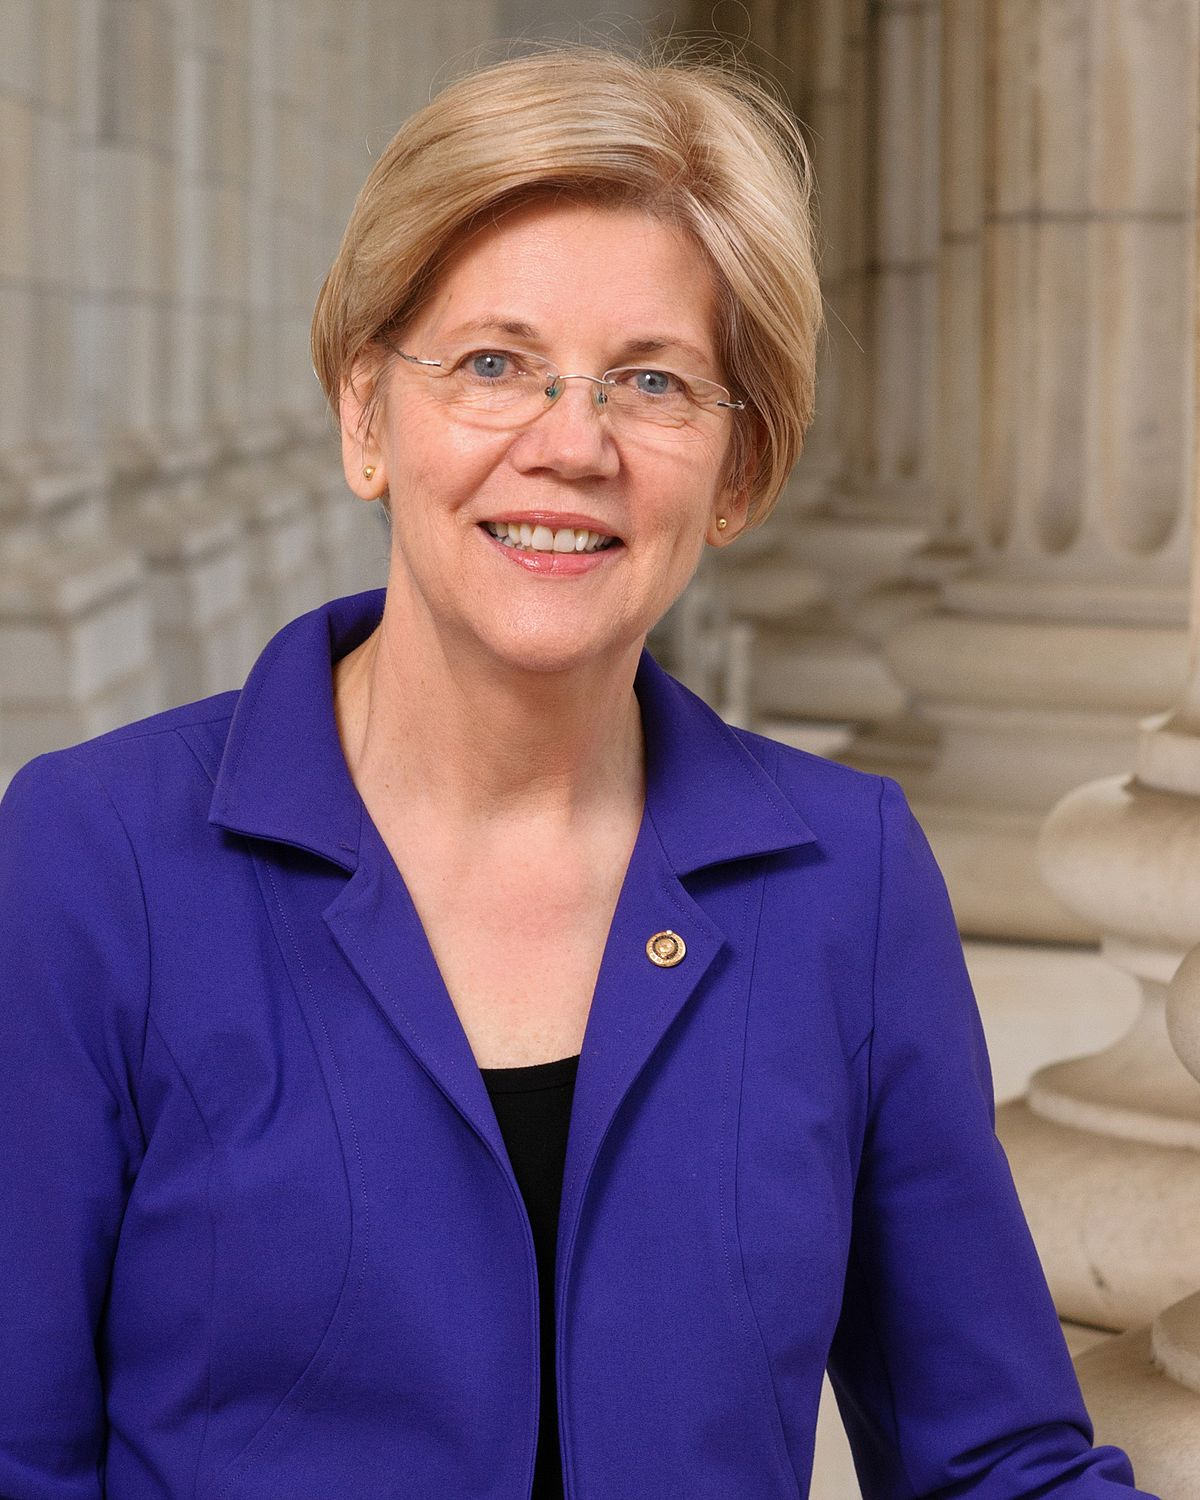 Warren Launches White House Bid Calling for 'Structural Change'